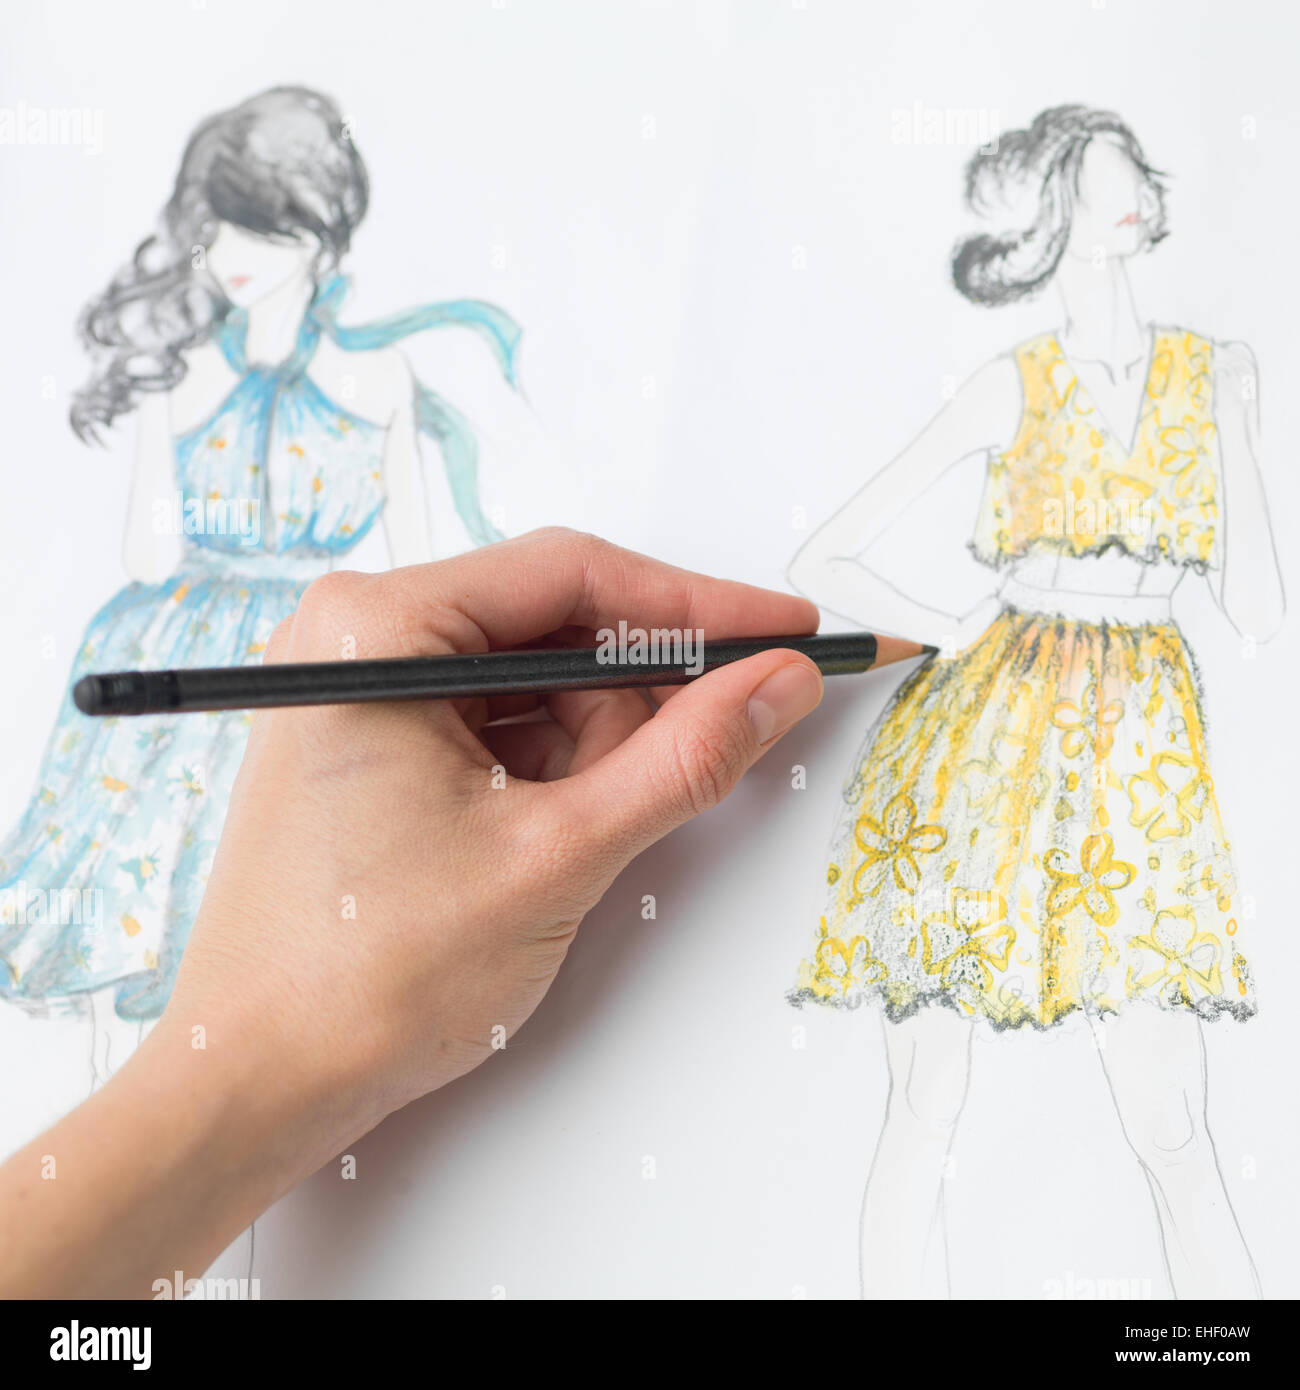 closeup of human hand drawing fashion design on paper - Stock Image